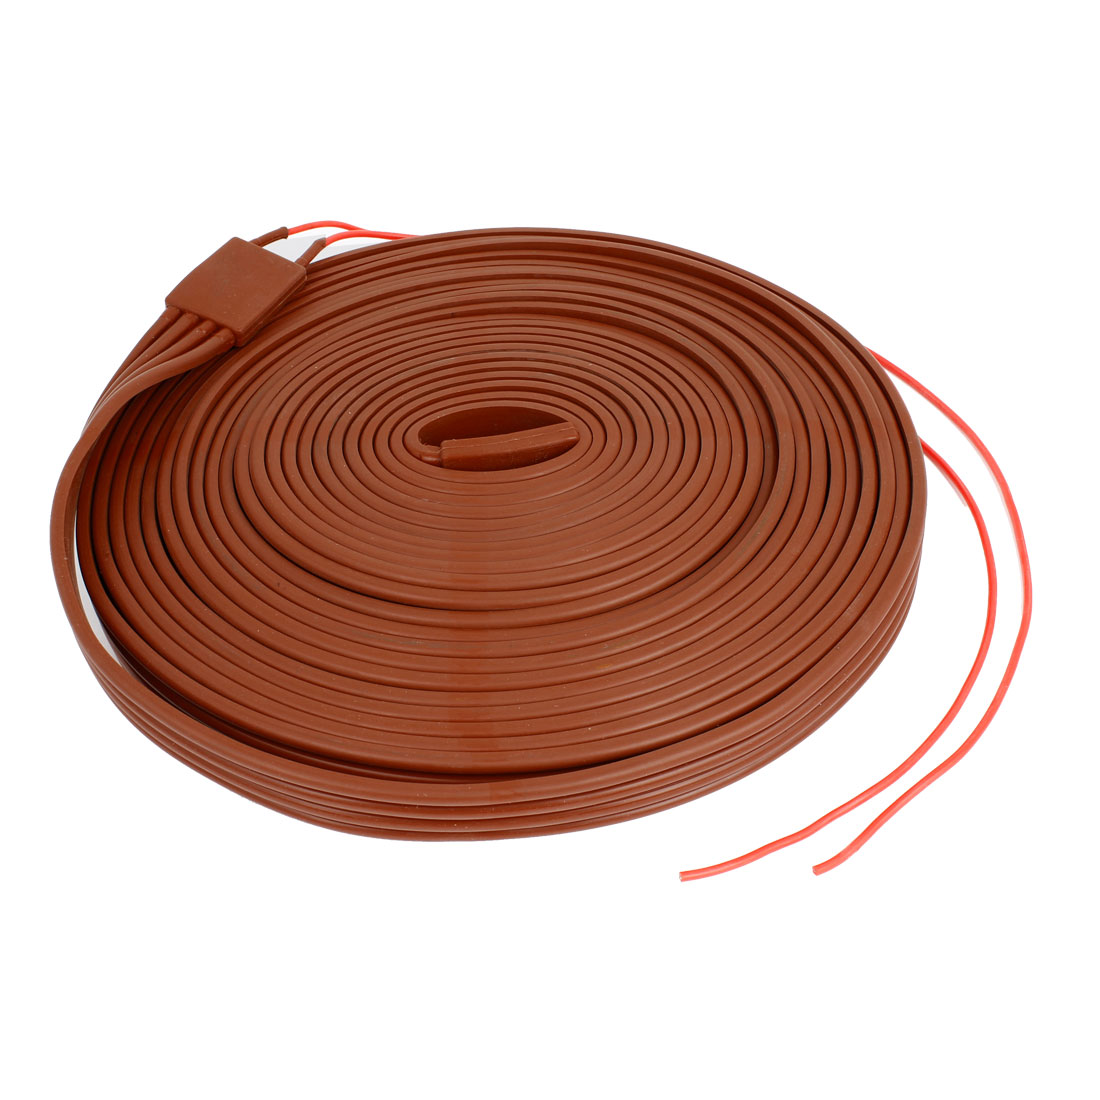 Red Silicone Waterproof Heater Strip Band 25mm Wide 10M Long 60V